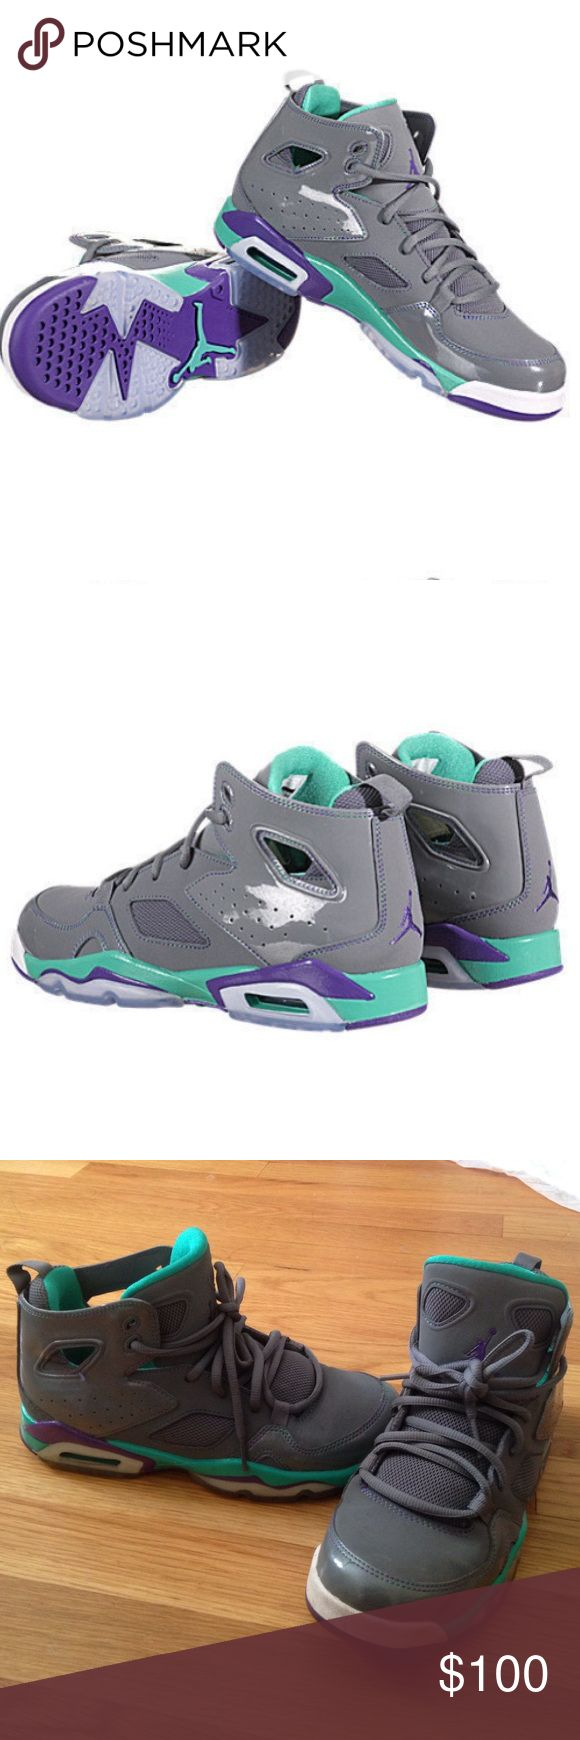 Nike air Jordan flight club 91 grey violet teal Adorable Nike air Jordans!! Grey/ultra violet/atomic teal colors. Great condition only worn a few times. Size 5 youth which is the same fit as 7 women's OFFERS WELCOME Nike Shoes Sneakers